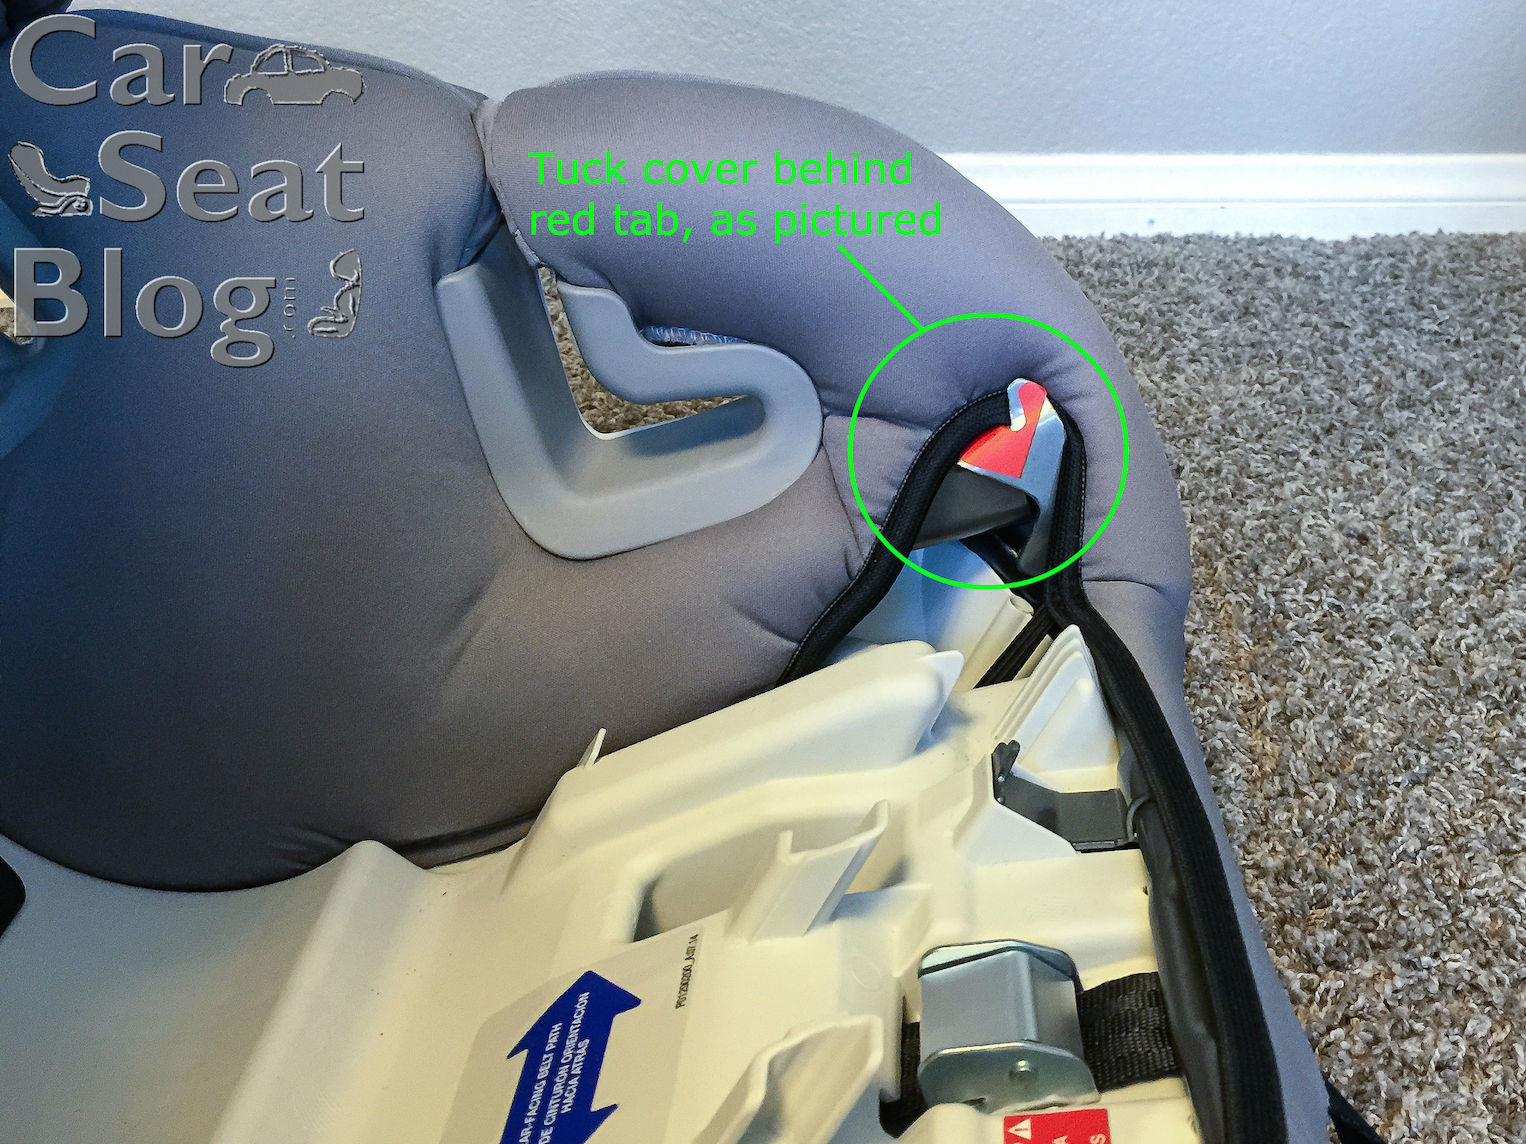 britax car seat cleaning instructions